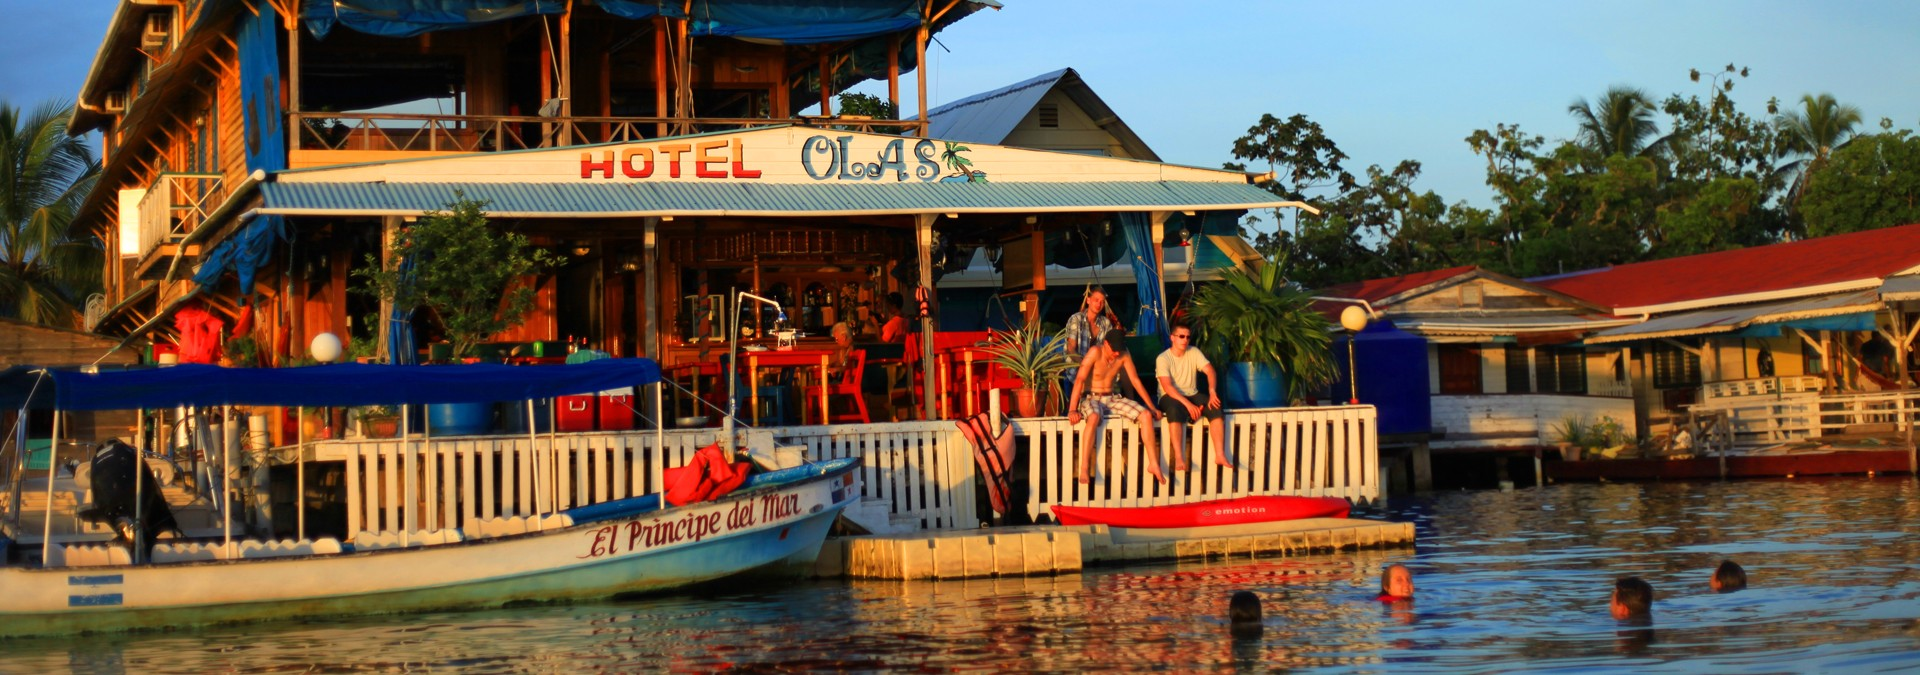 Welcome To Hotel Olas Bocas De Toro